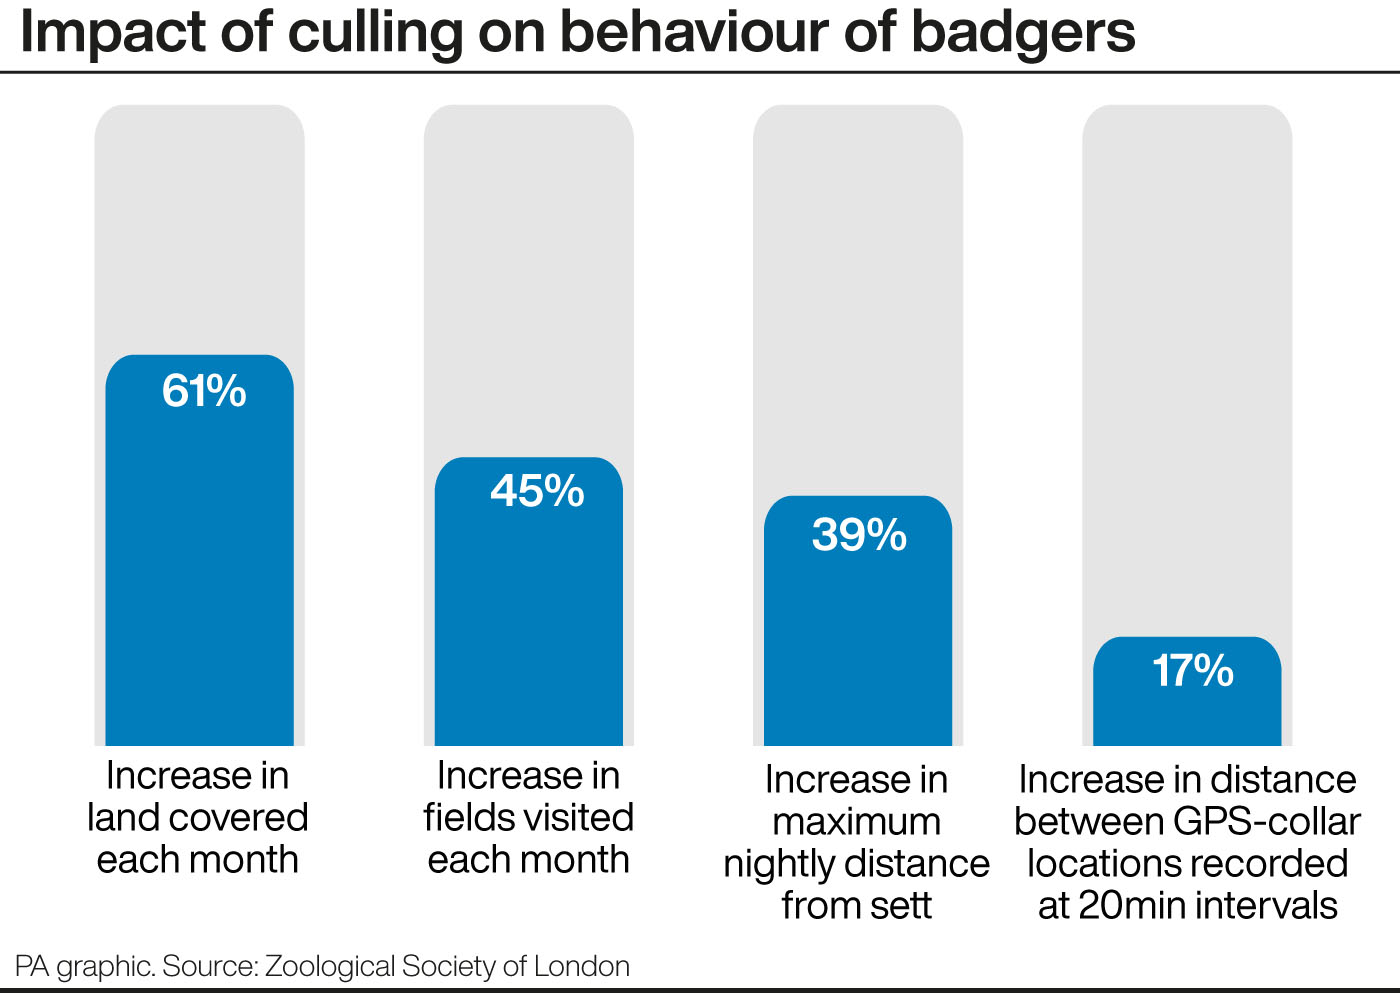 A graphic showing the impact of culling on behaviour of badgers